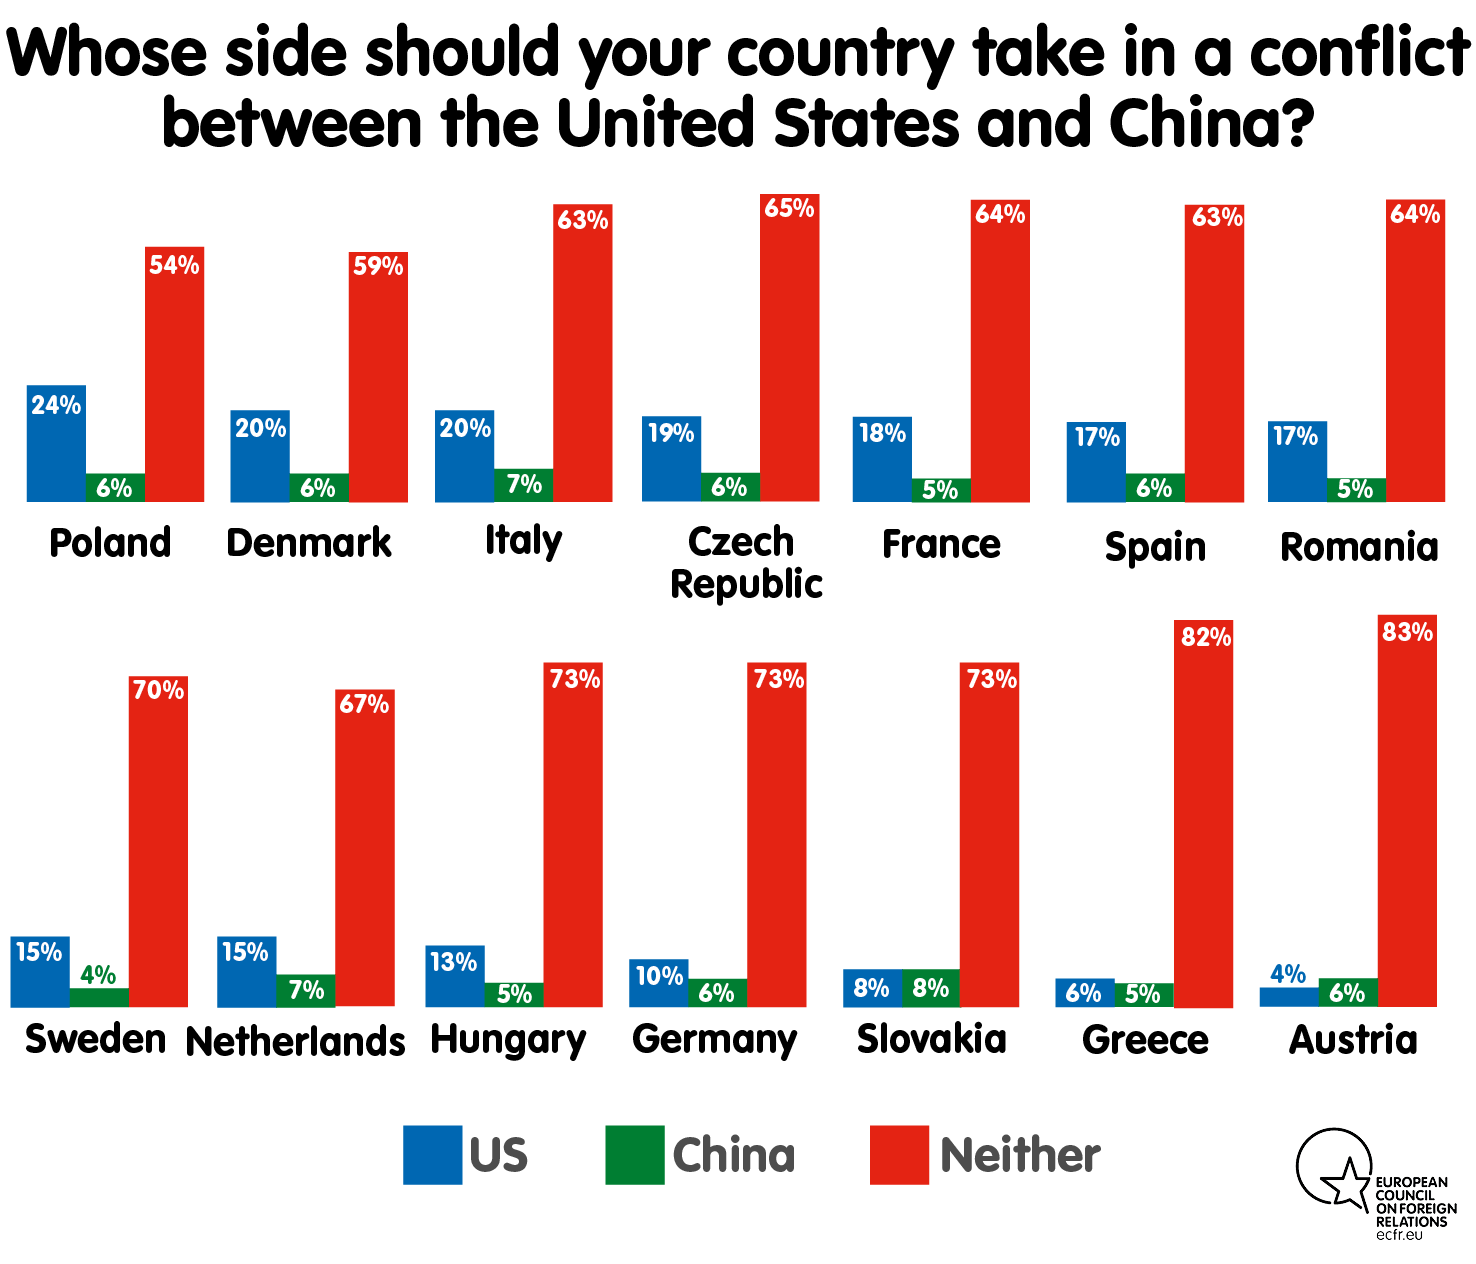 Whose side should your country take in a conflict between the United States and China?